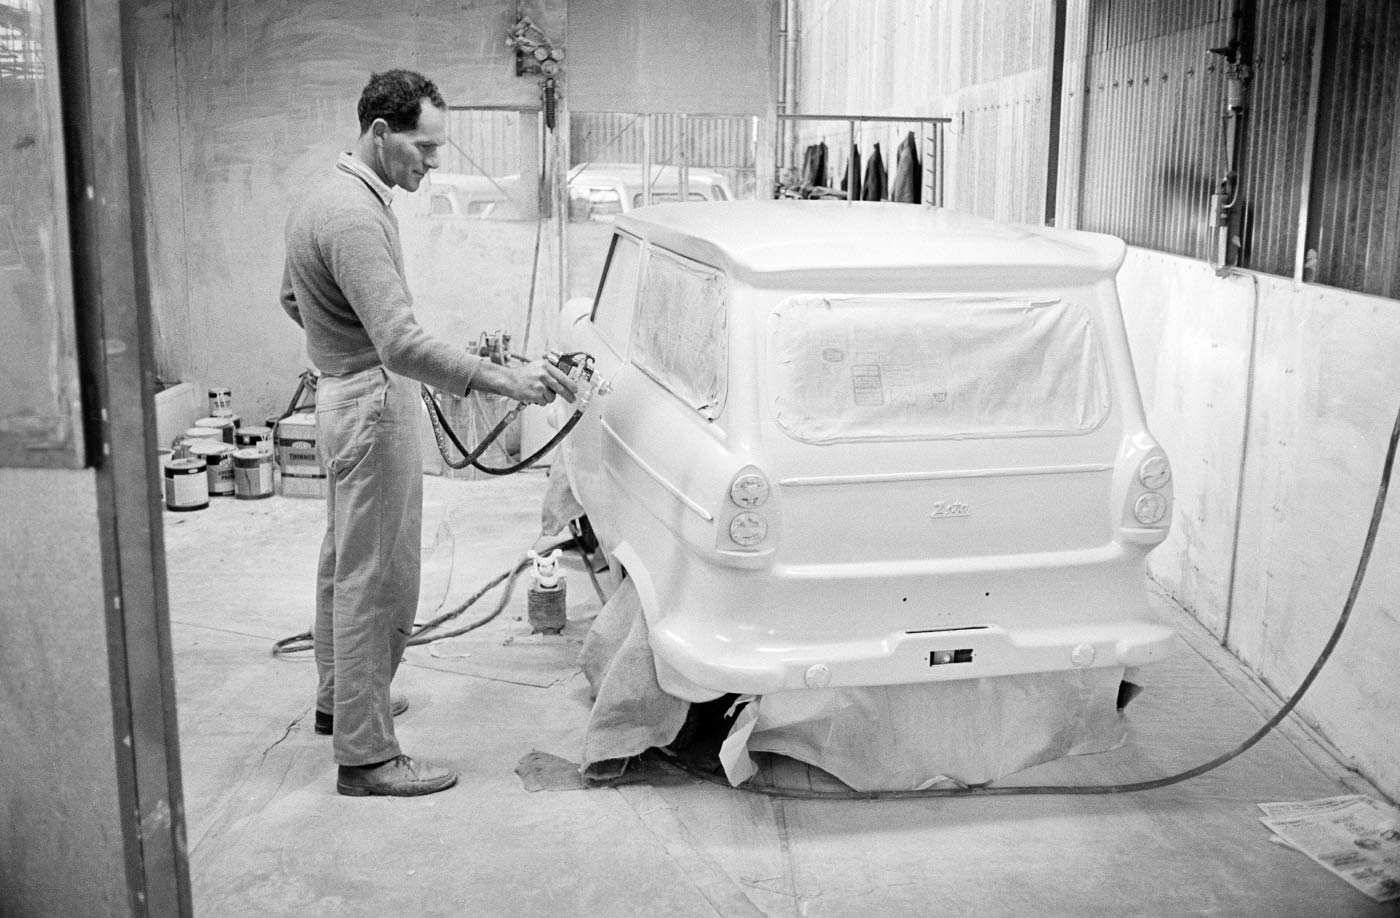 A black and white image of a worker facing a small white car body. - click to view larger image